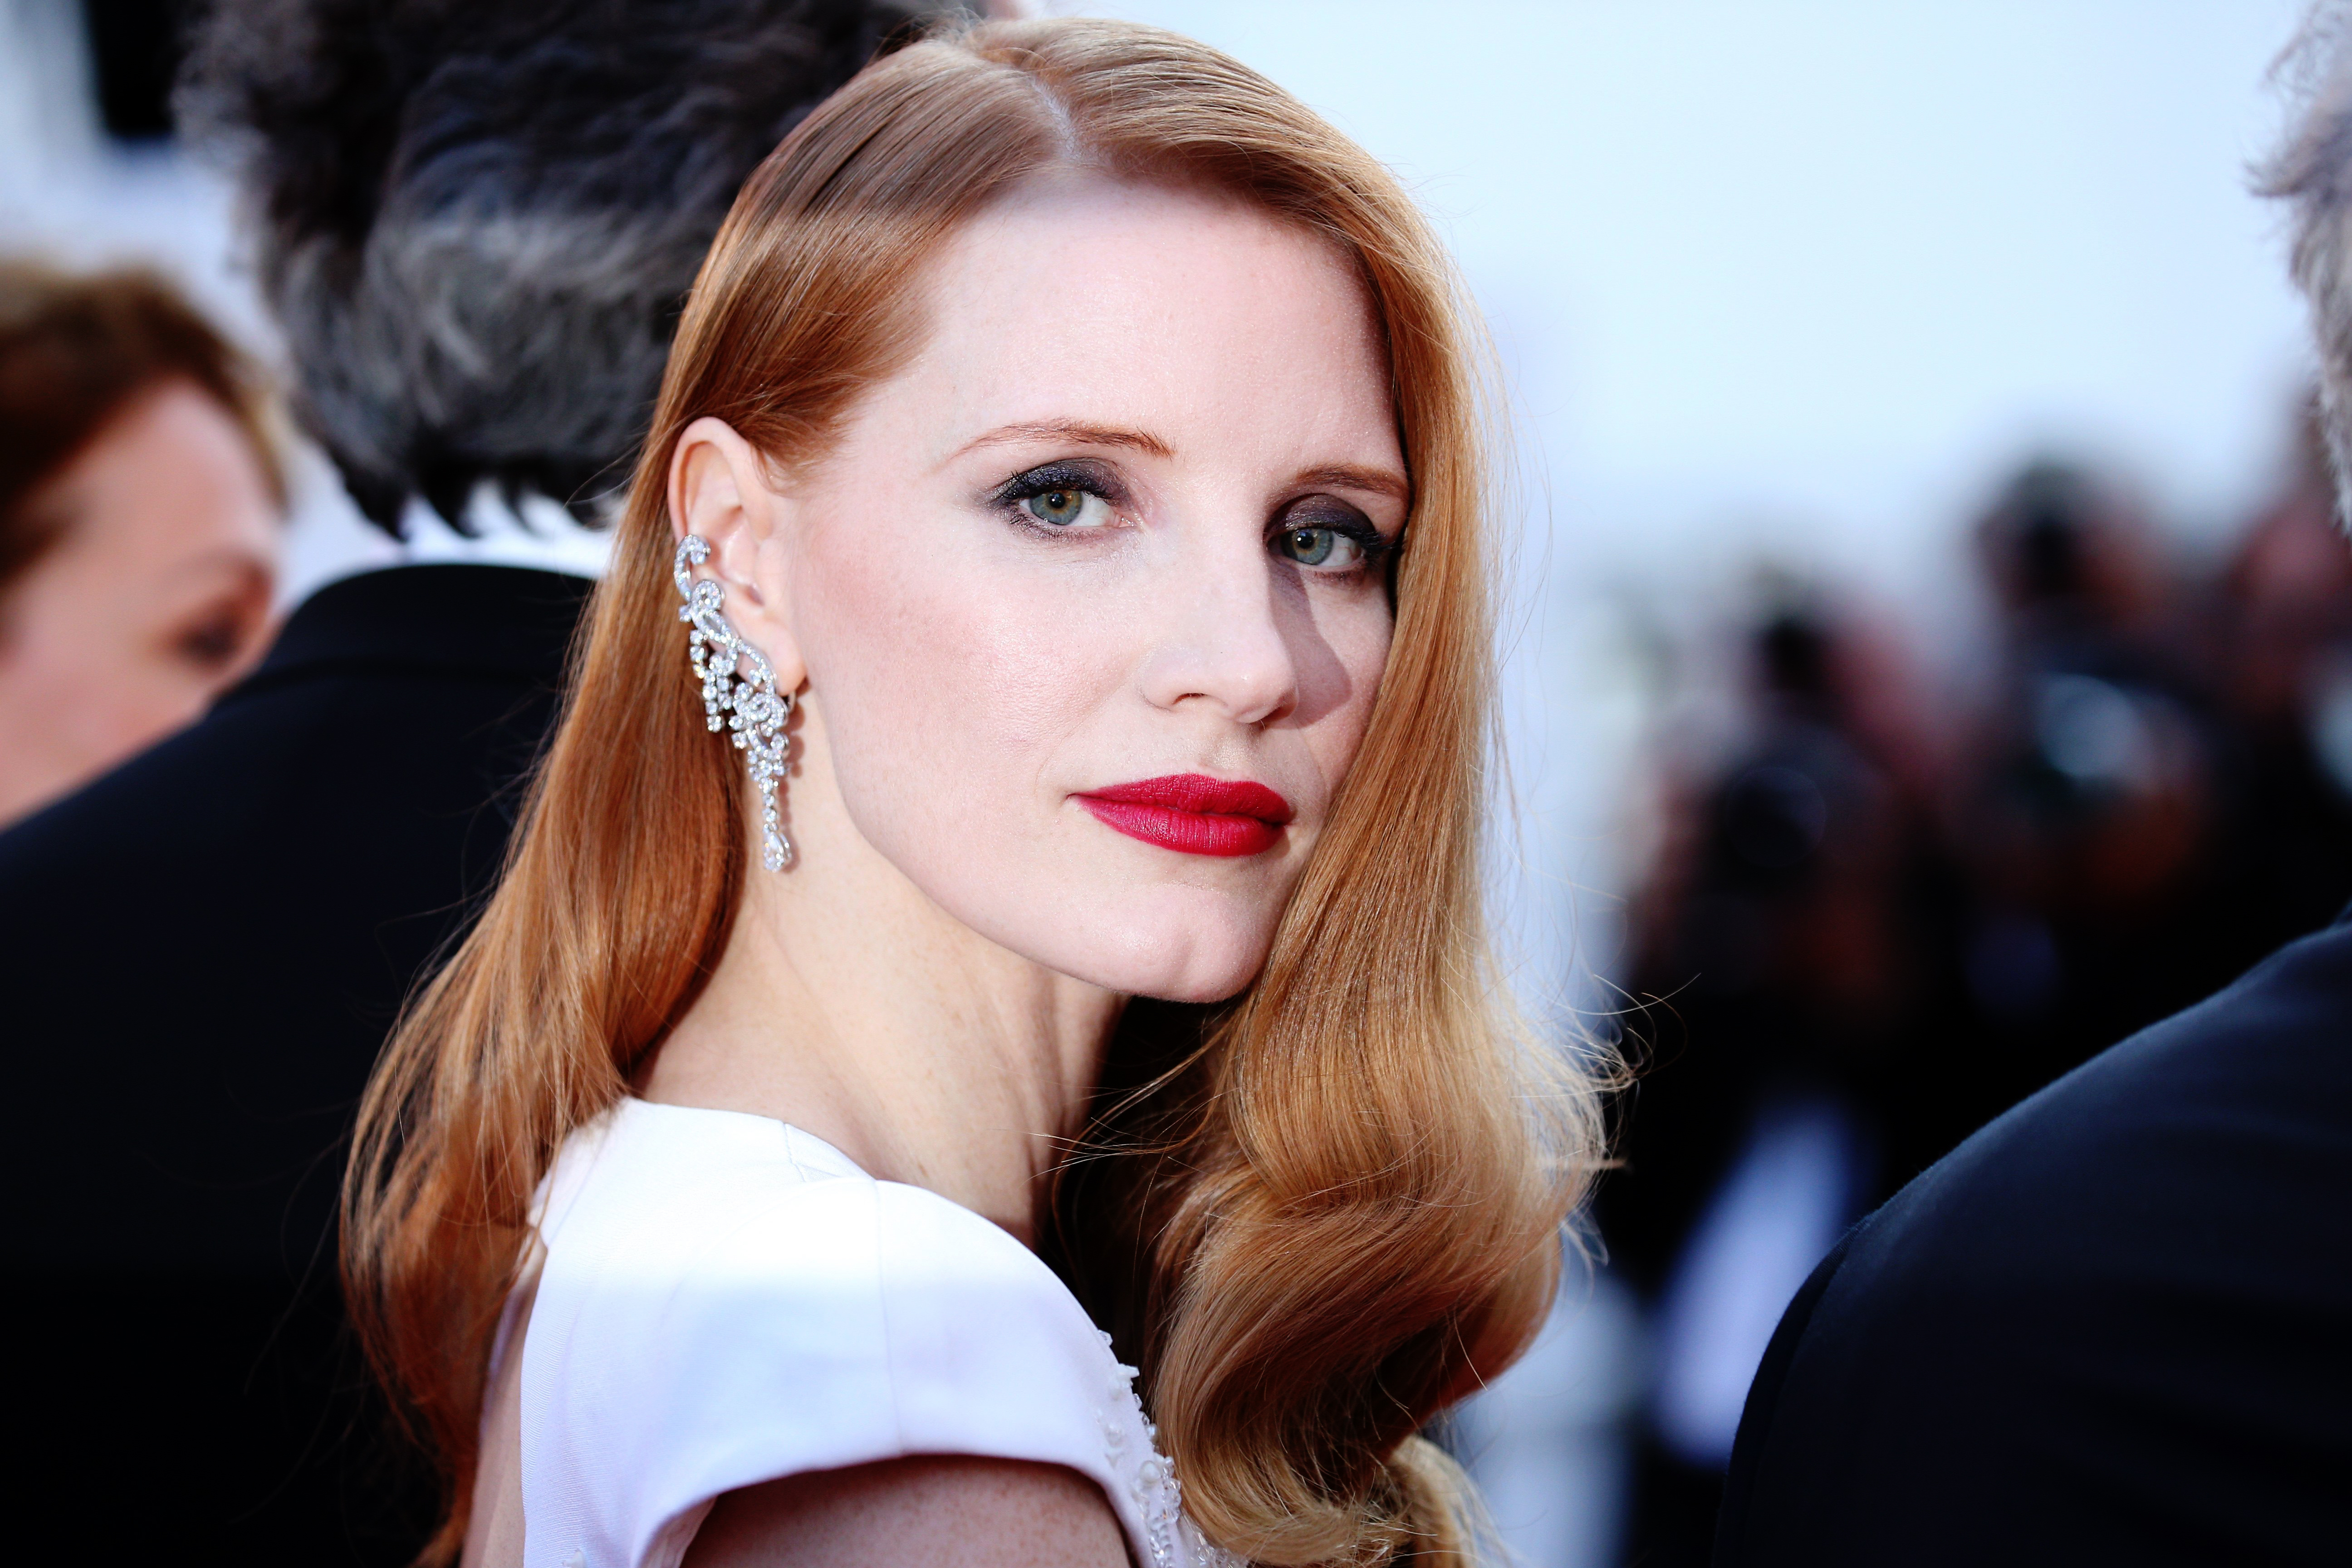 Photos Jessica Chastain nudes (91 photo), Sexy, Fappening, Boobs, swimsuit 2017